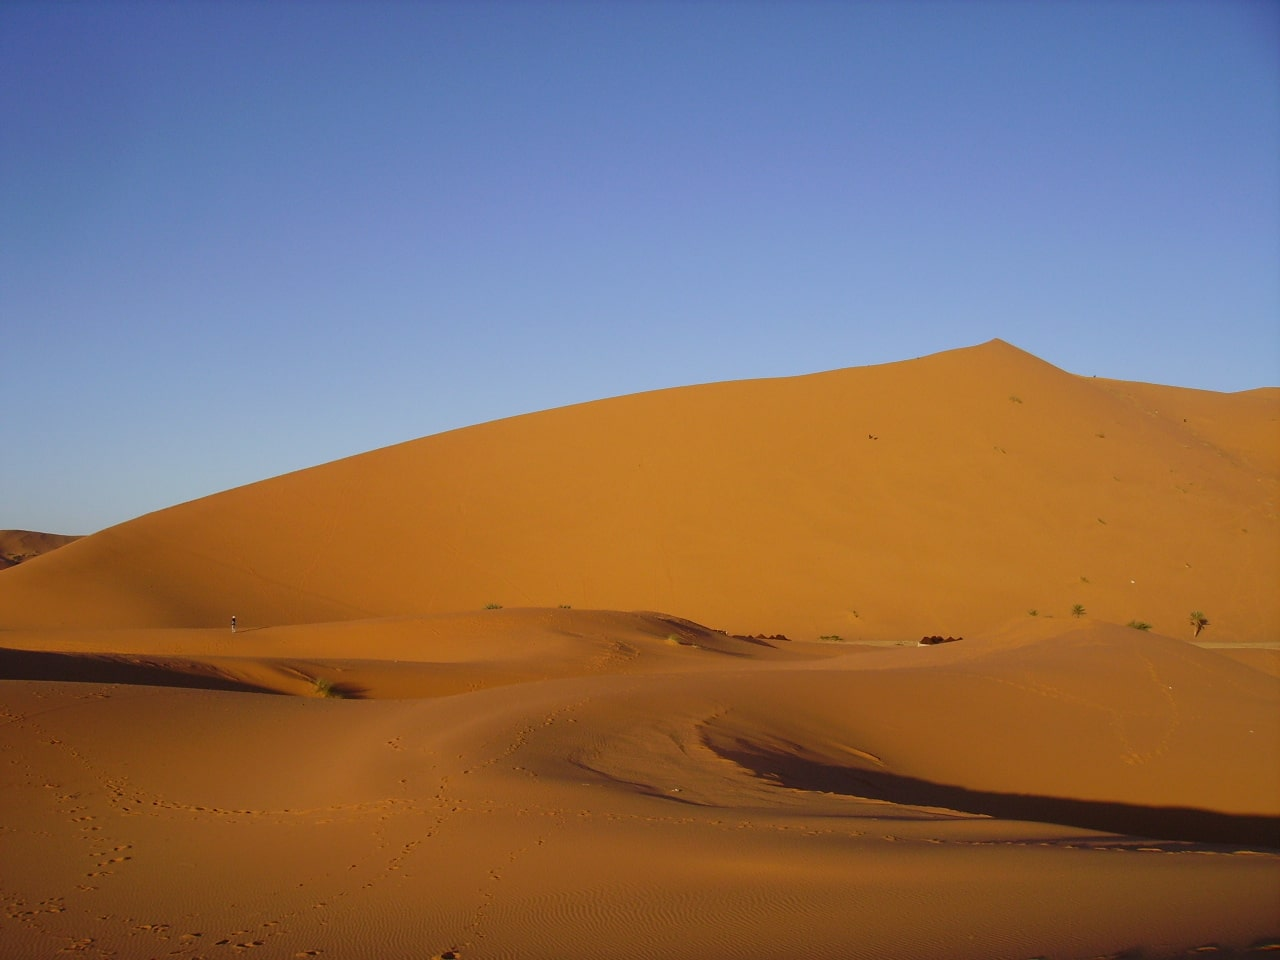 The Sahara Desert in Morocco - Wandering Life